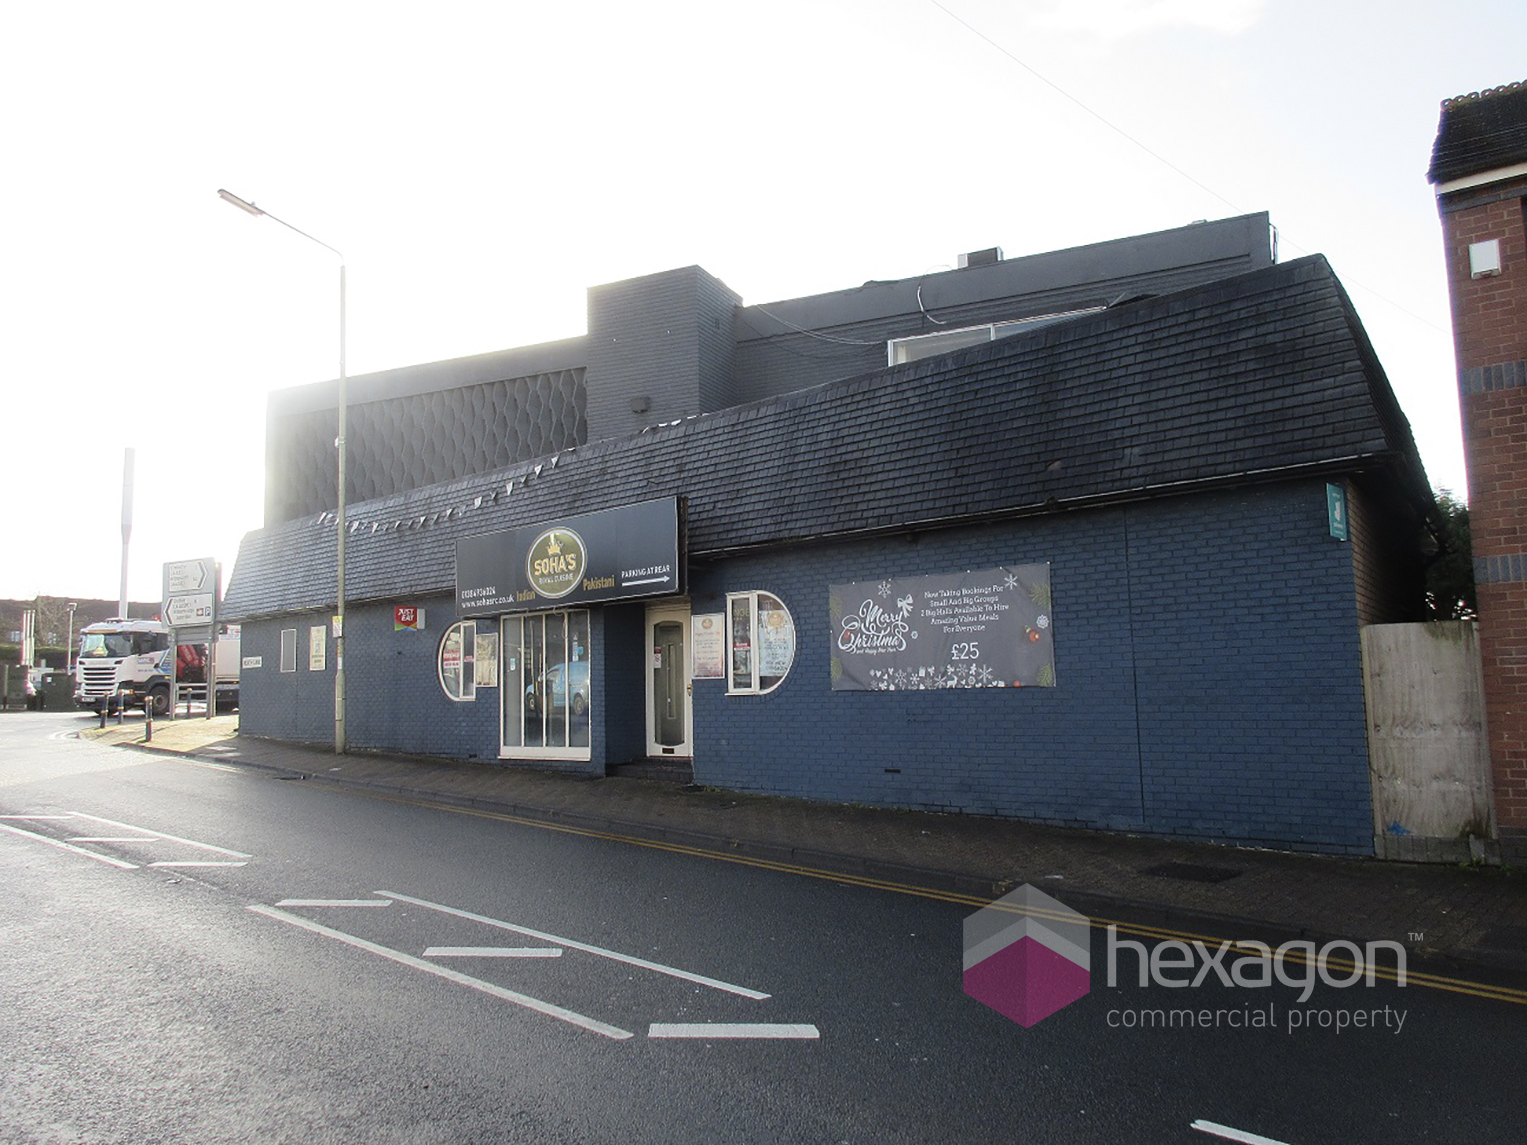 0 bed Shop for rent in Stourbridge. From Hexagon Commercial Property